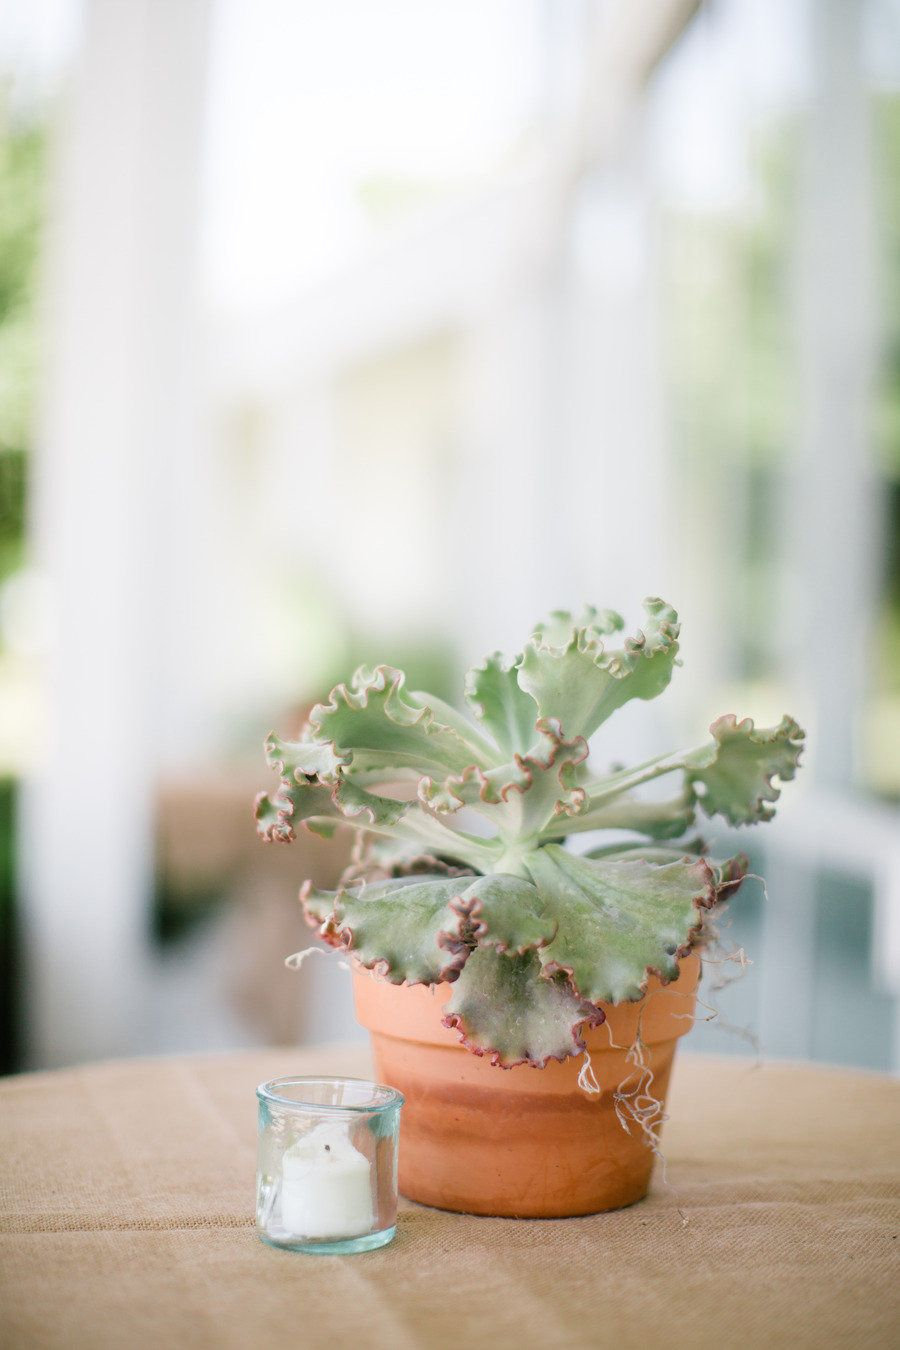 #potted-plants  Photography: Jess Barfield Photography - jessbarfield.com Floral Design: Stems of Dallas - stemsofdallas.com  Read More: http://www.stylemepretty.com/2012/06/11/backyard-little-elm-wedding-by-jess-barfield-photography/